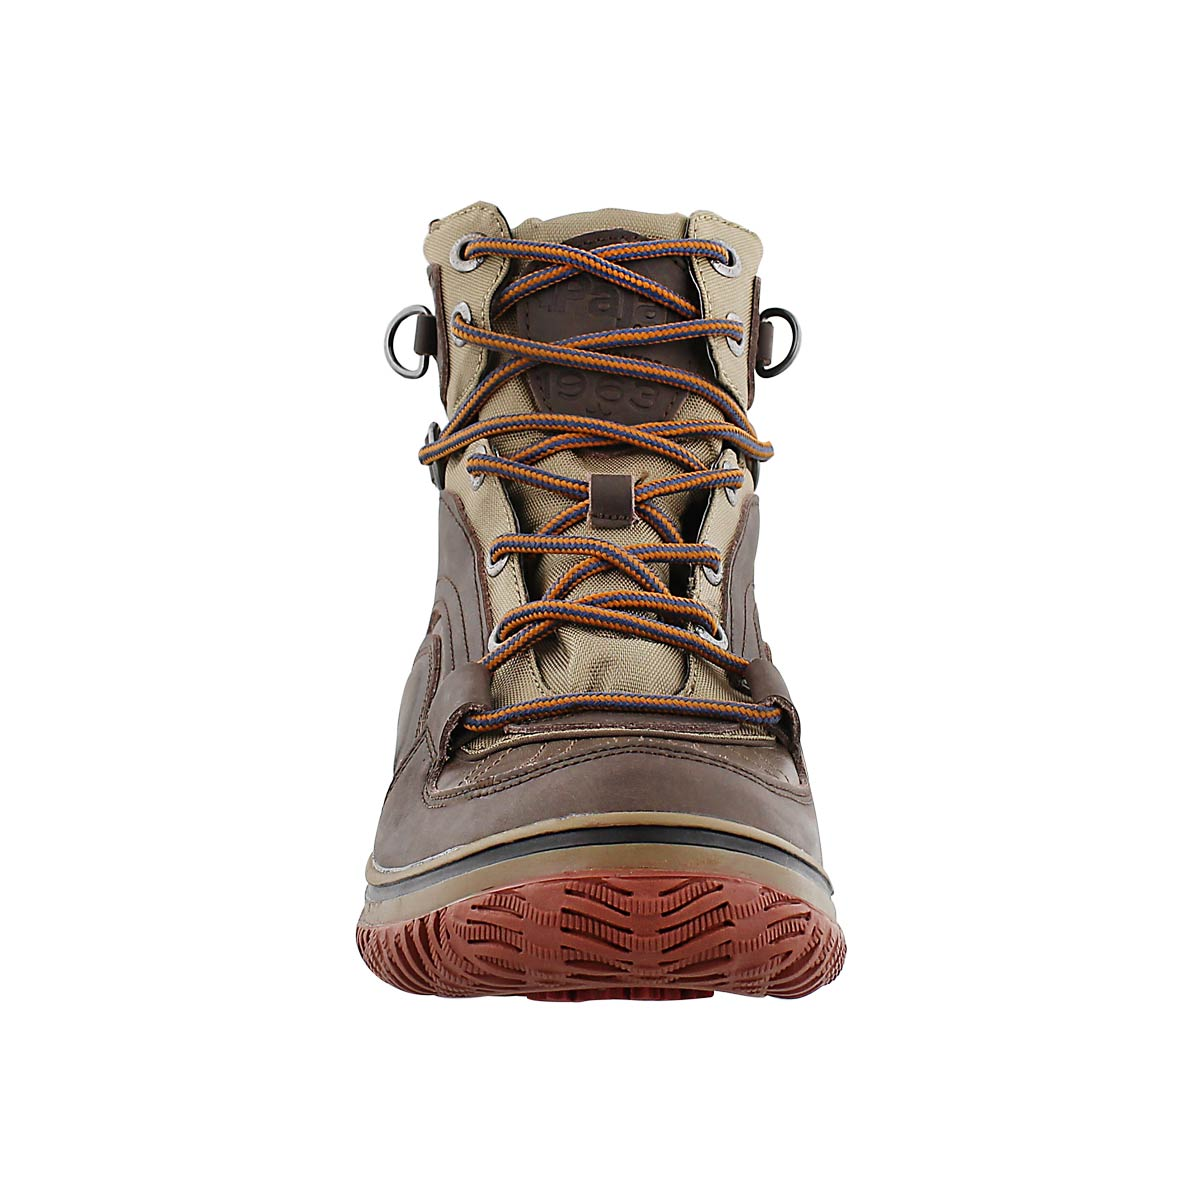 Mns Connor brown lace up wntr ankle boot